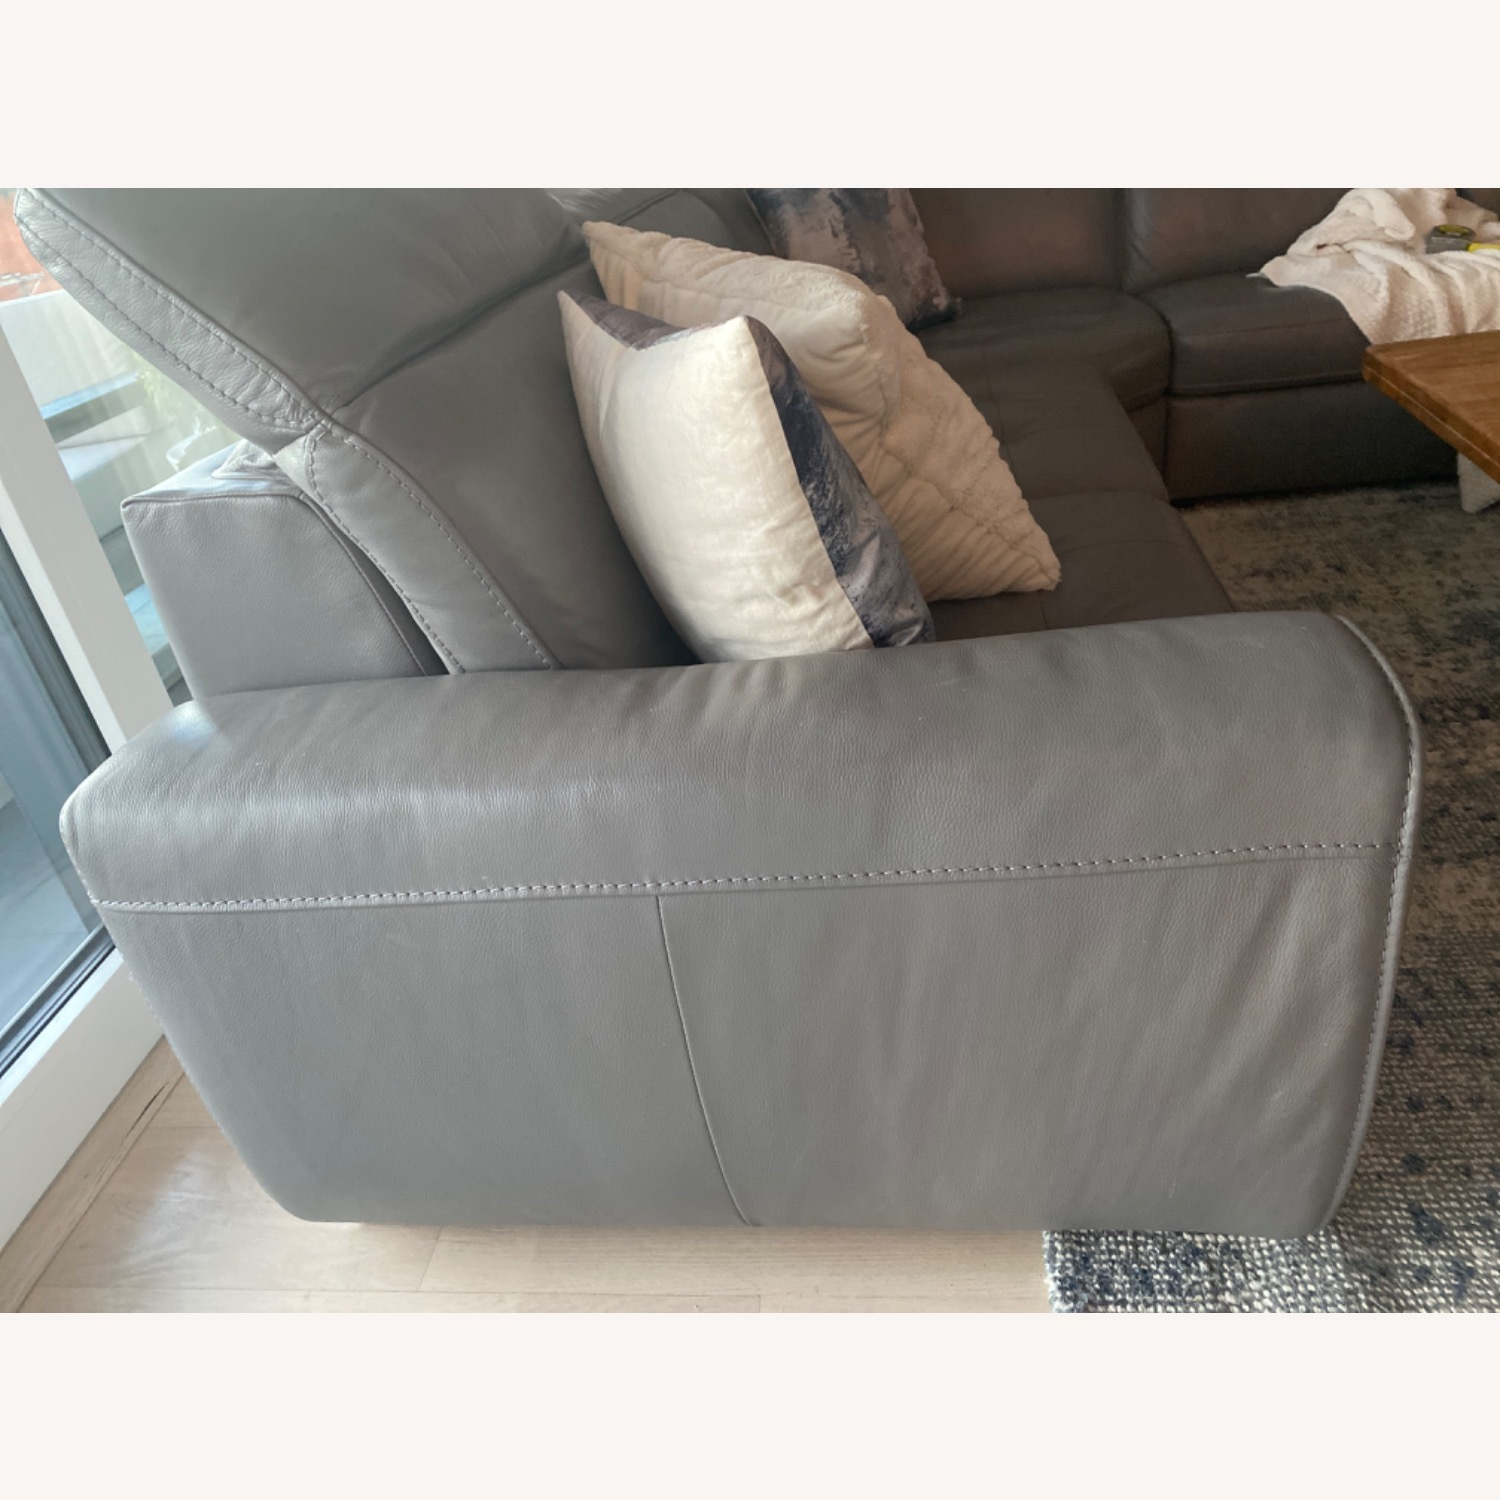 W shilling Leather Recliner Sectional Light Grey - image-3